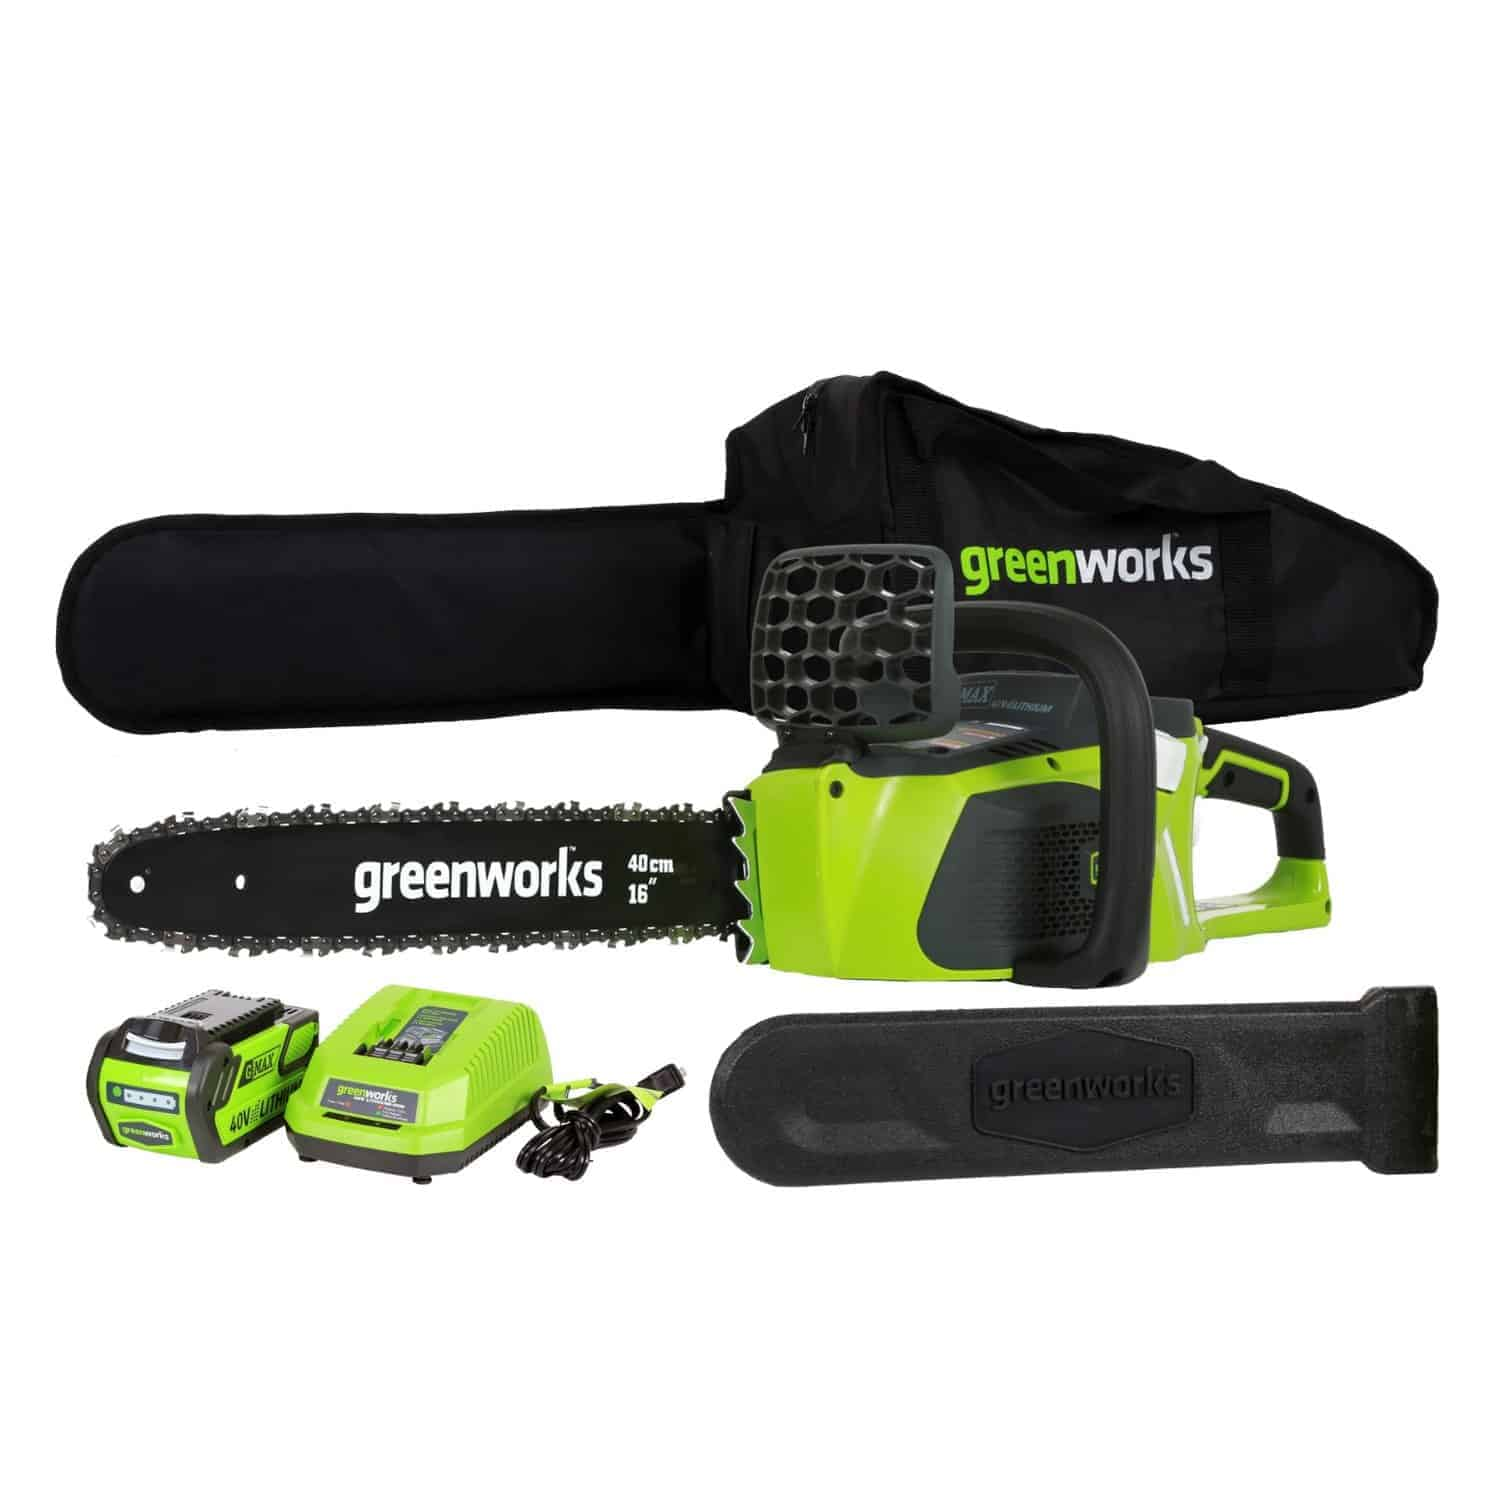 GreenWorks 20312 DigiPro G-MAX Cordless Chainsaw